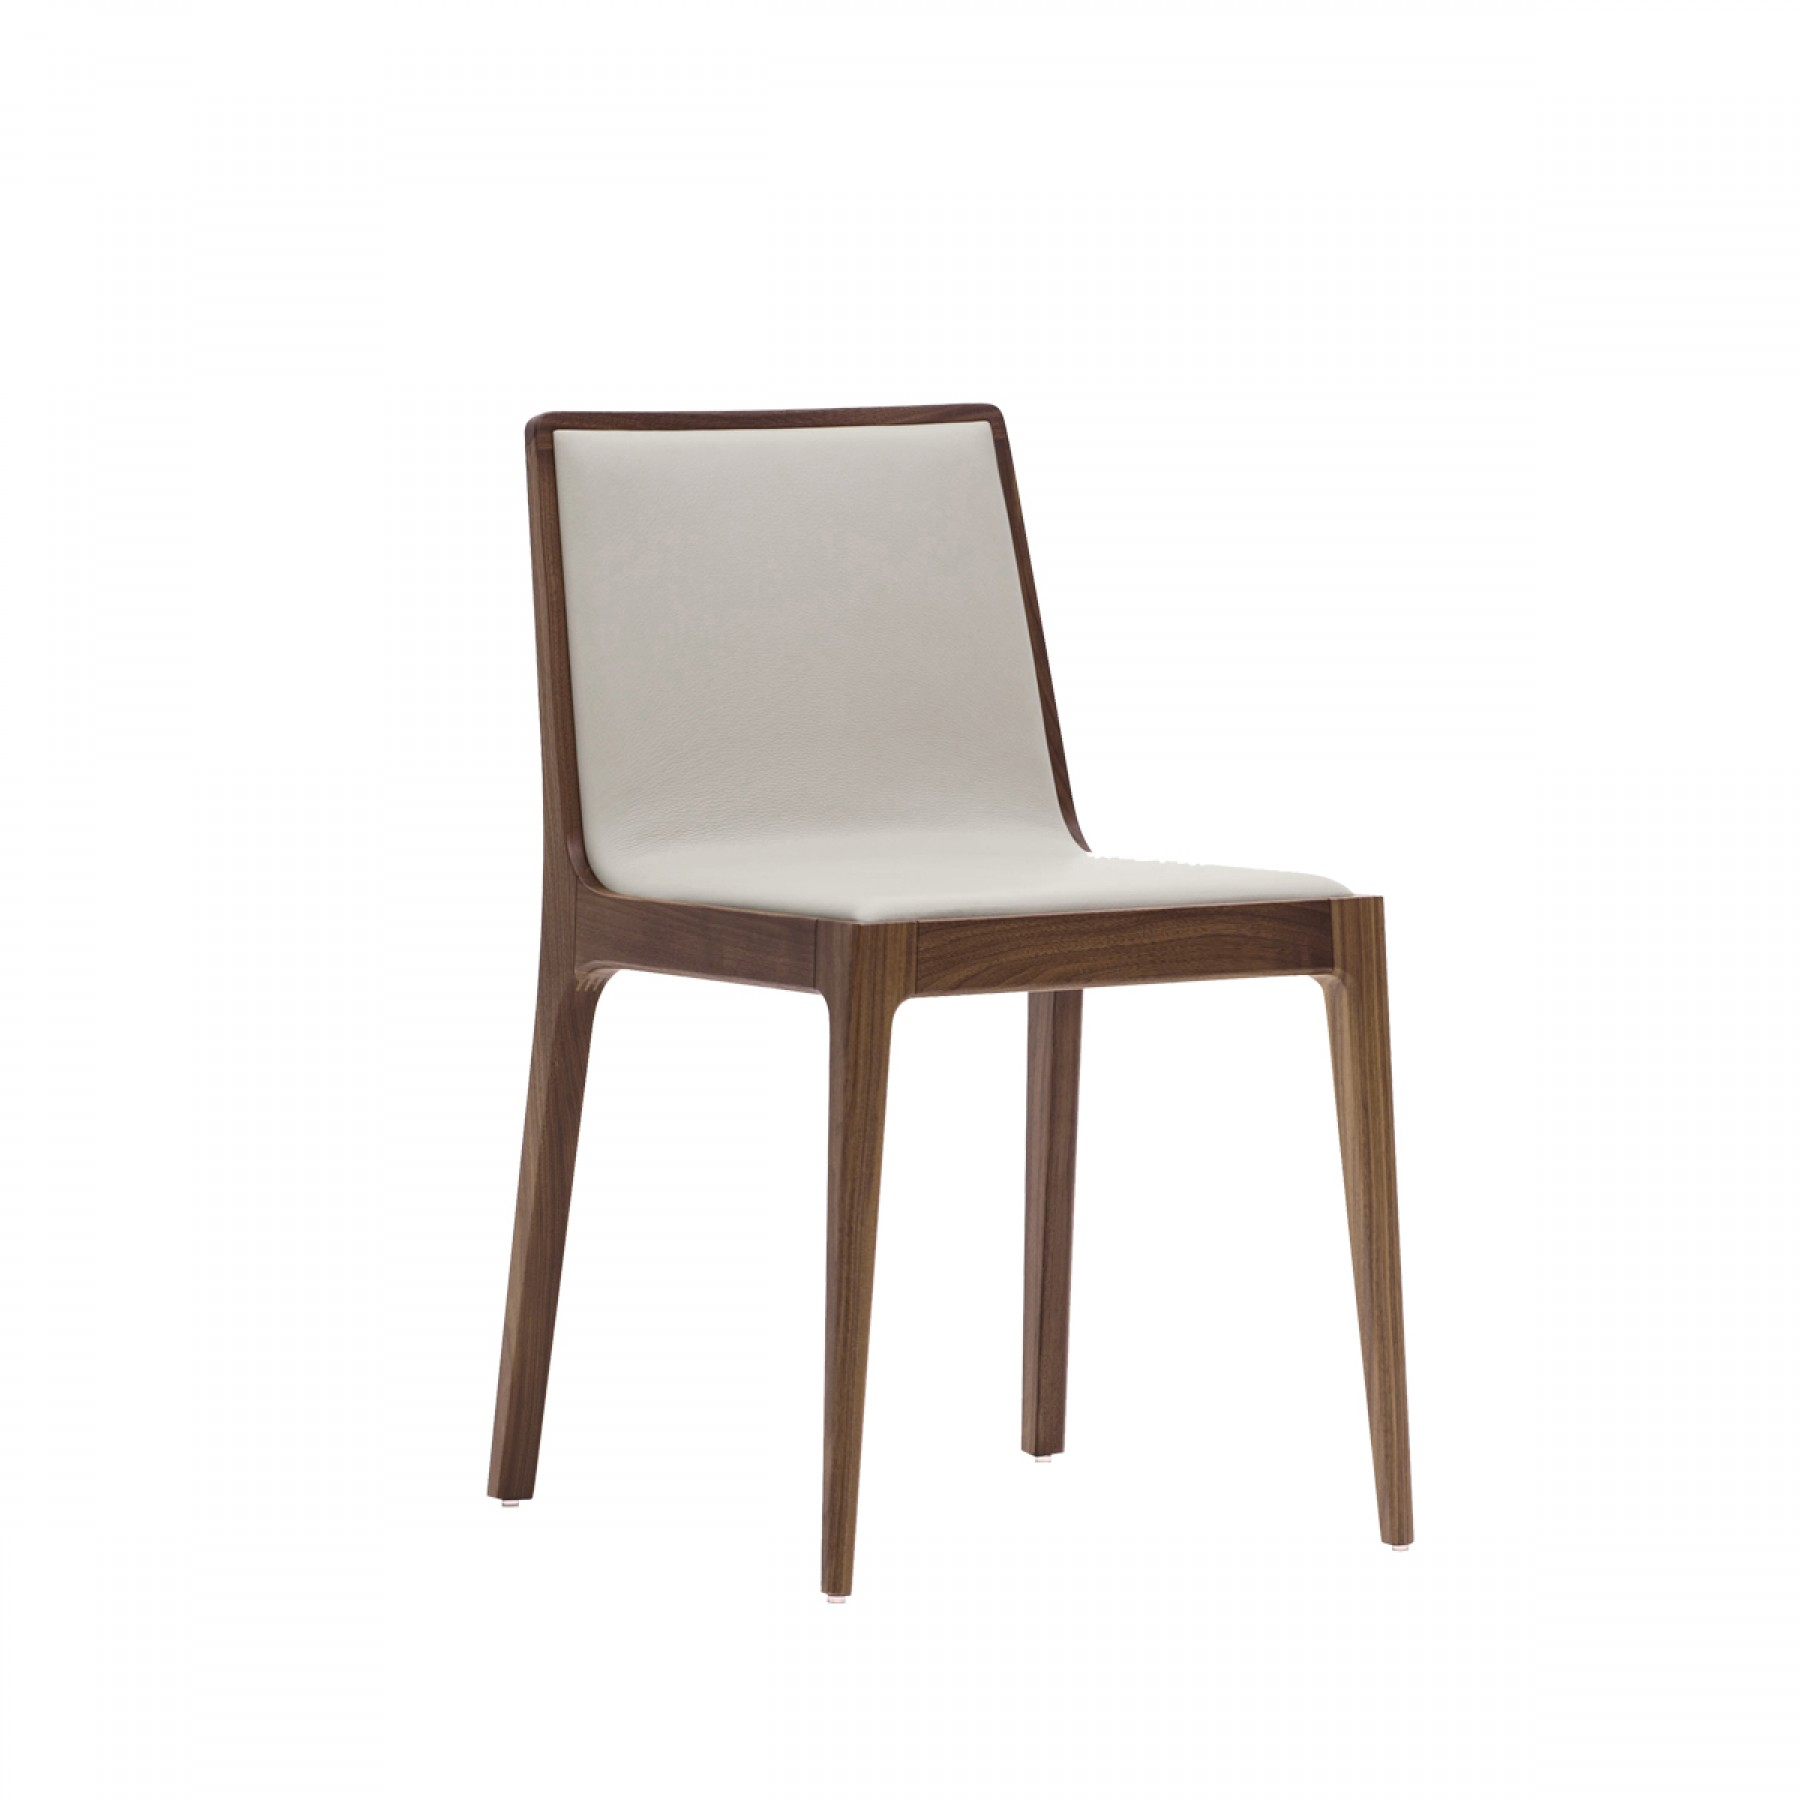 contemporary dining chairs leather. Theo-leather-timber-modern-dining-chair Contemporary Dining Chairs Leather S